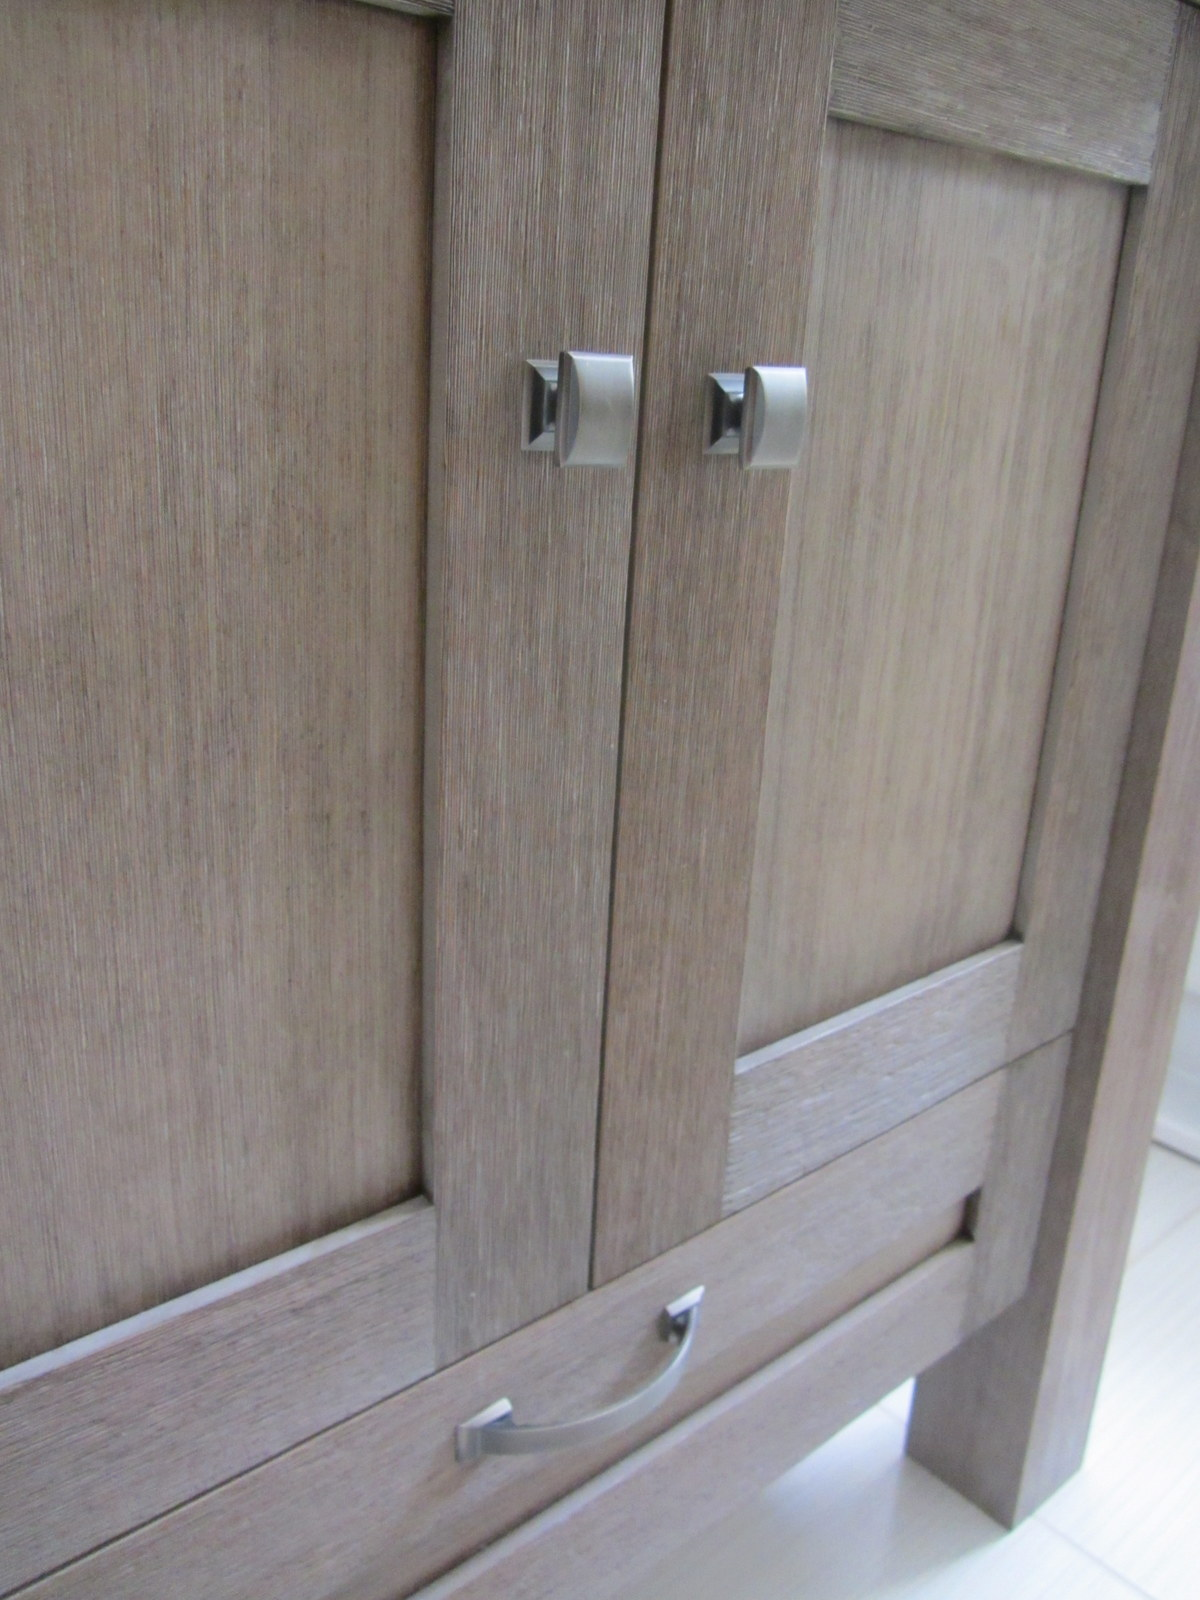 Details Such As A Seamless Tub, Wire Brushed Wood, Cabinet Hardware, Edge  Treatments, And Countertop Lines Really Stand Out In A Small Space, ...